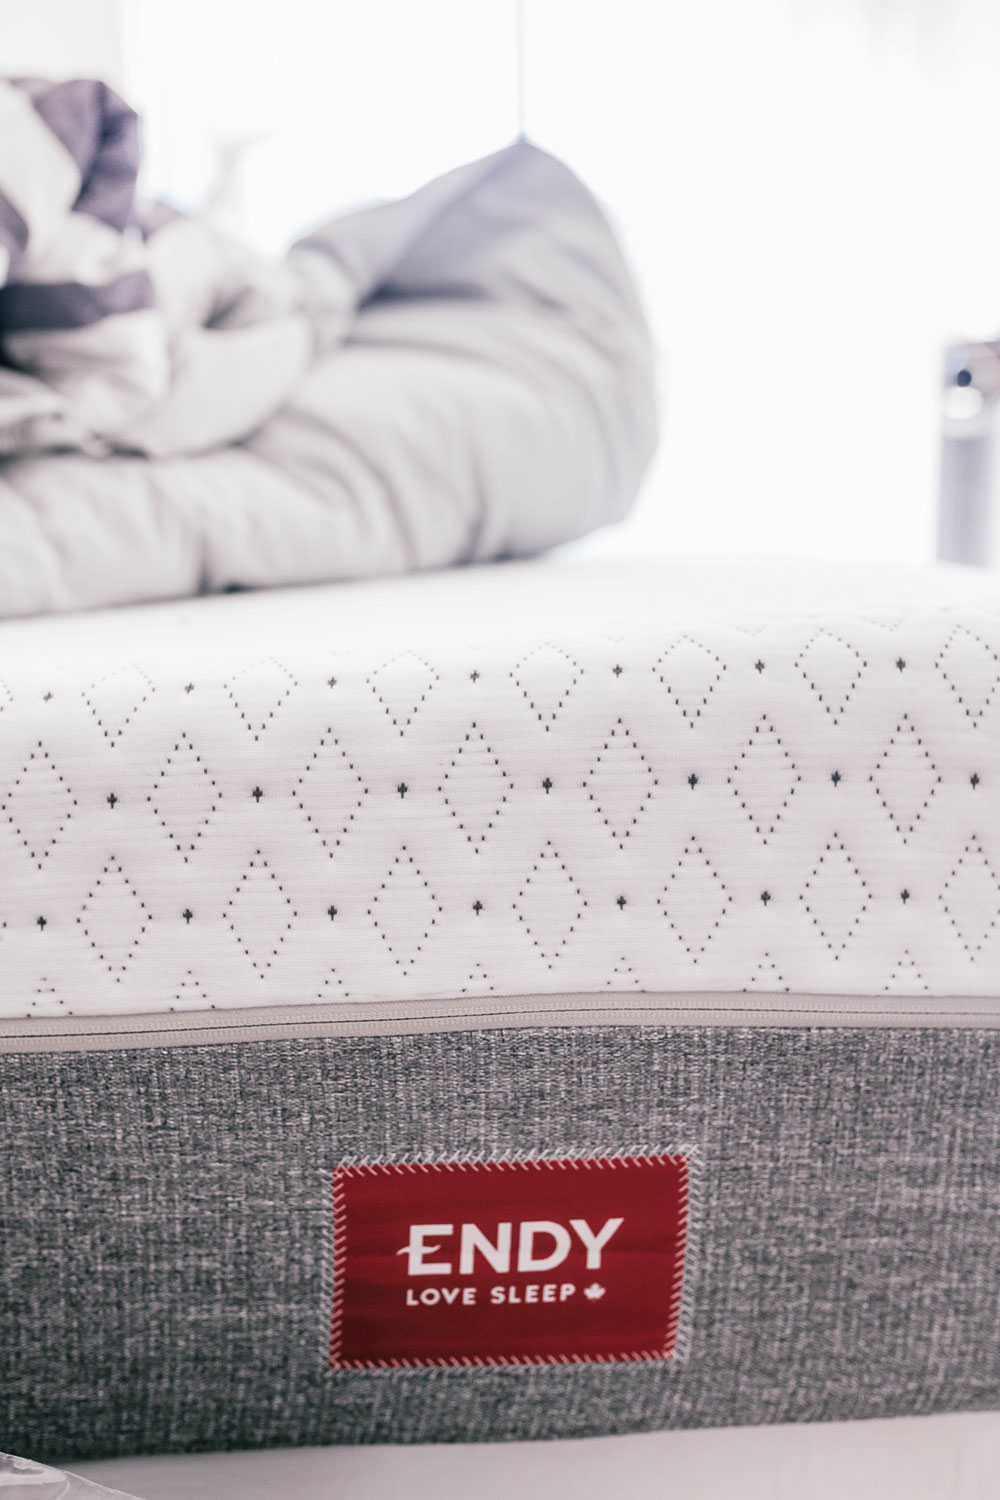 endy mattress review by To Vogue or Bust